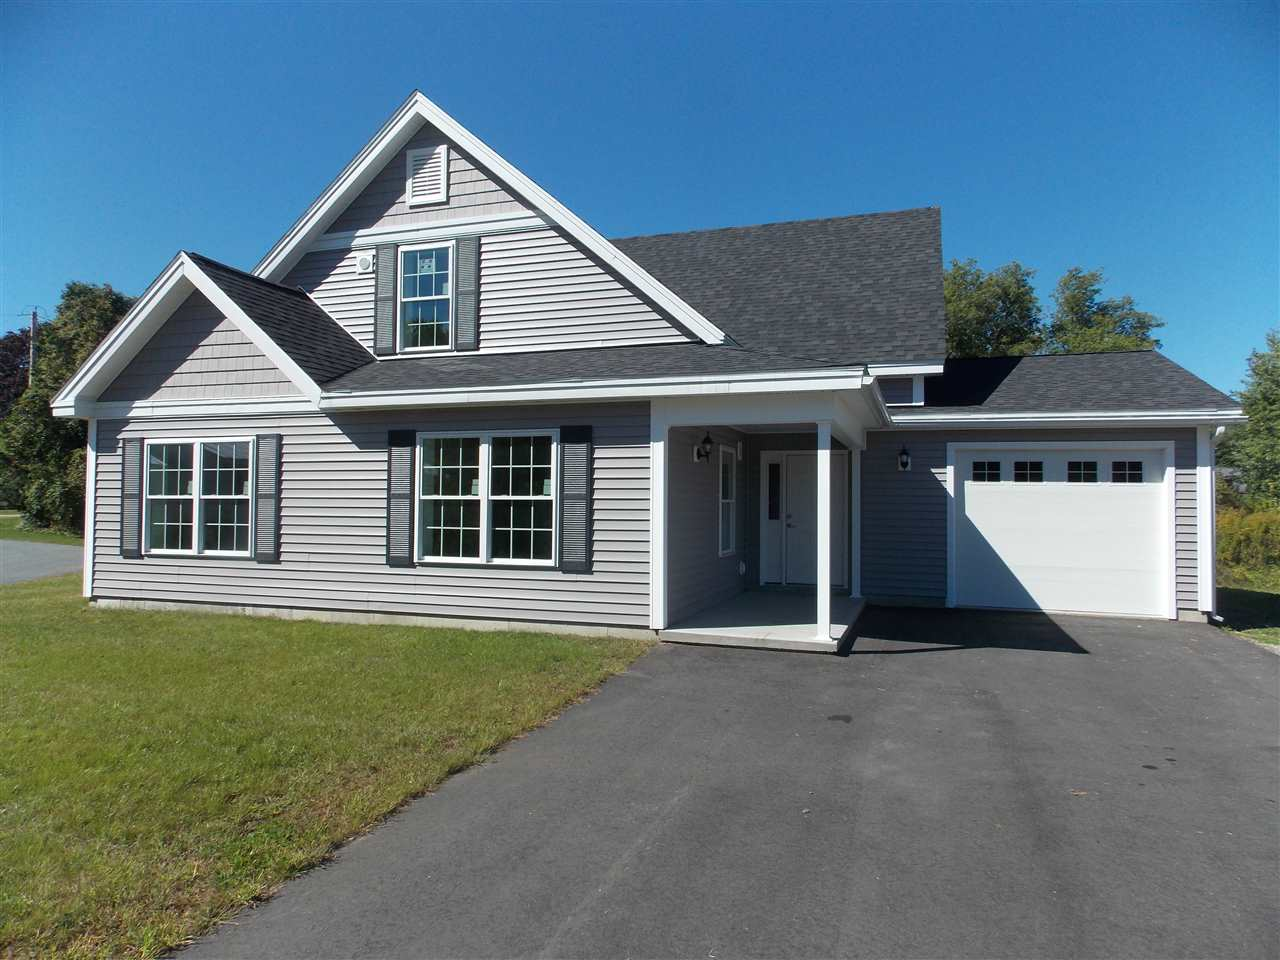 VILLAGE OF WILDER IN TOWN OF HARTFORD VT Home for sale $$318,900 | $146 per sq.ft.